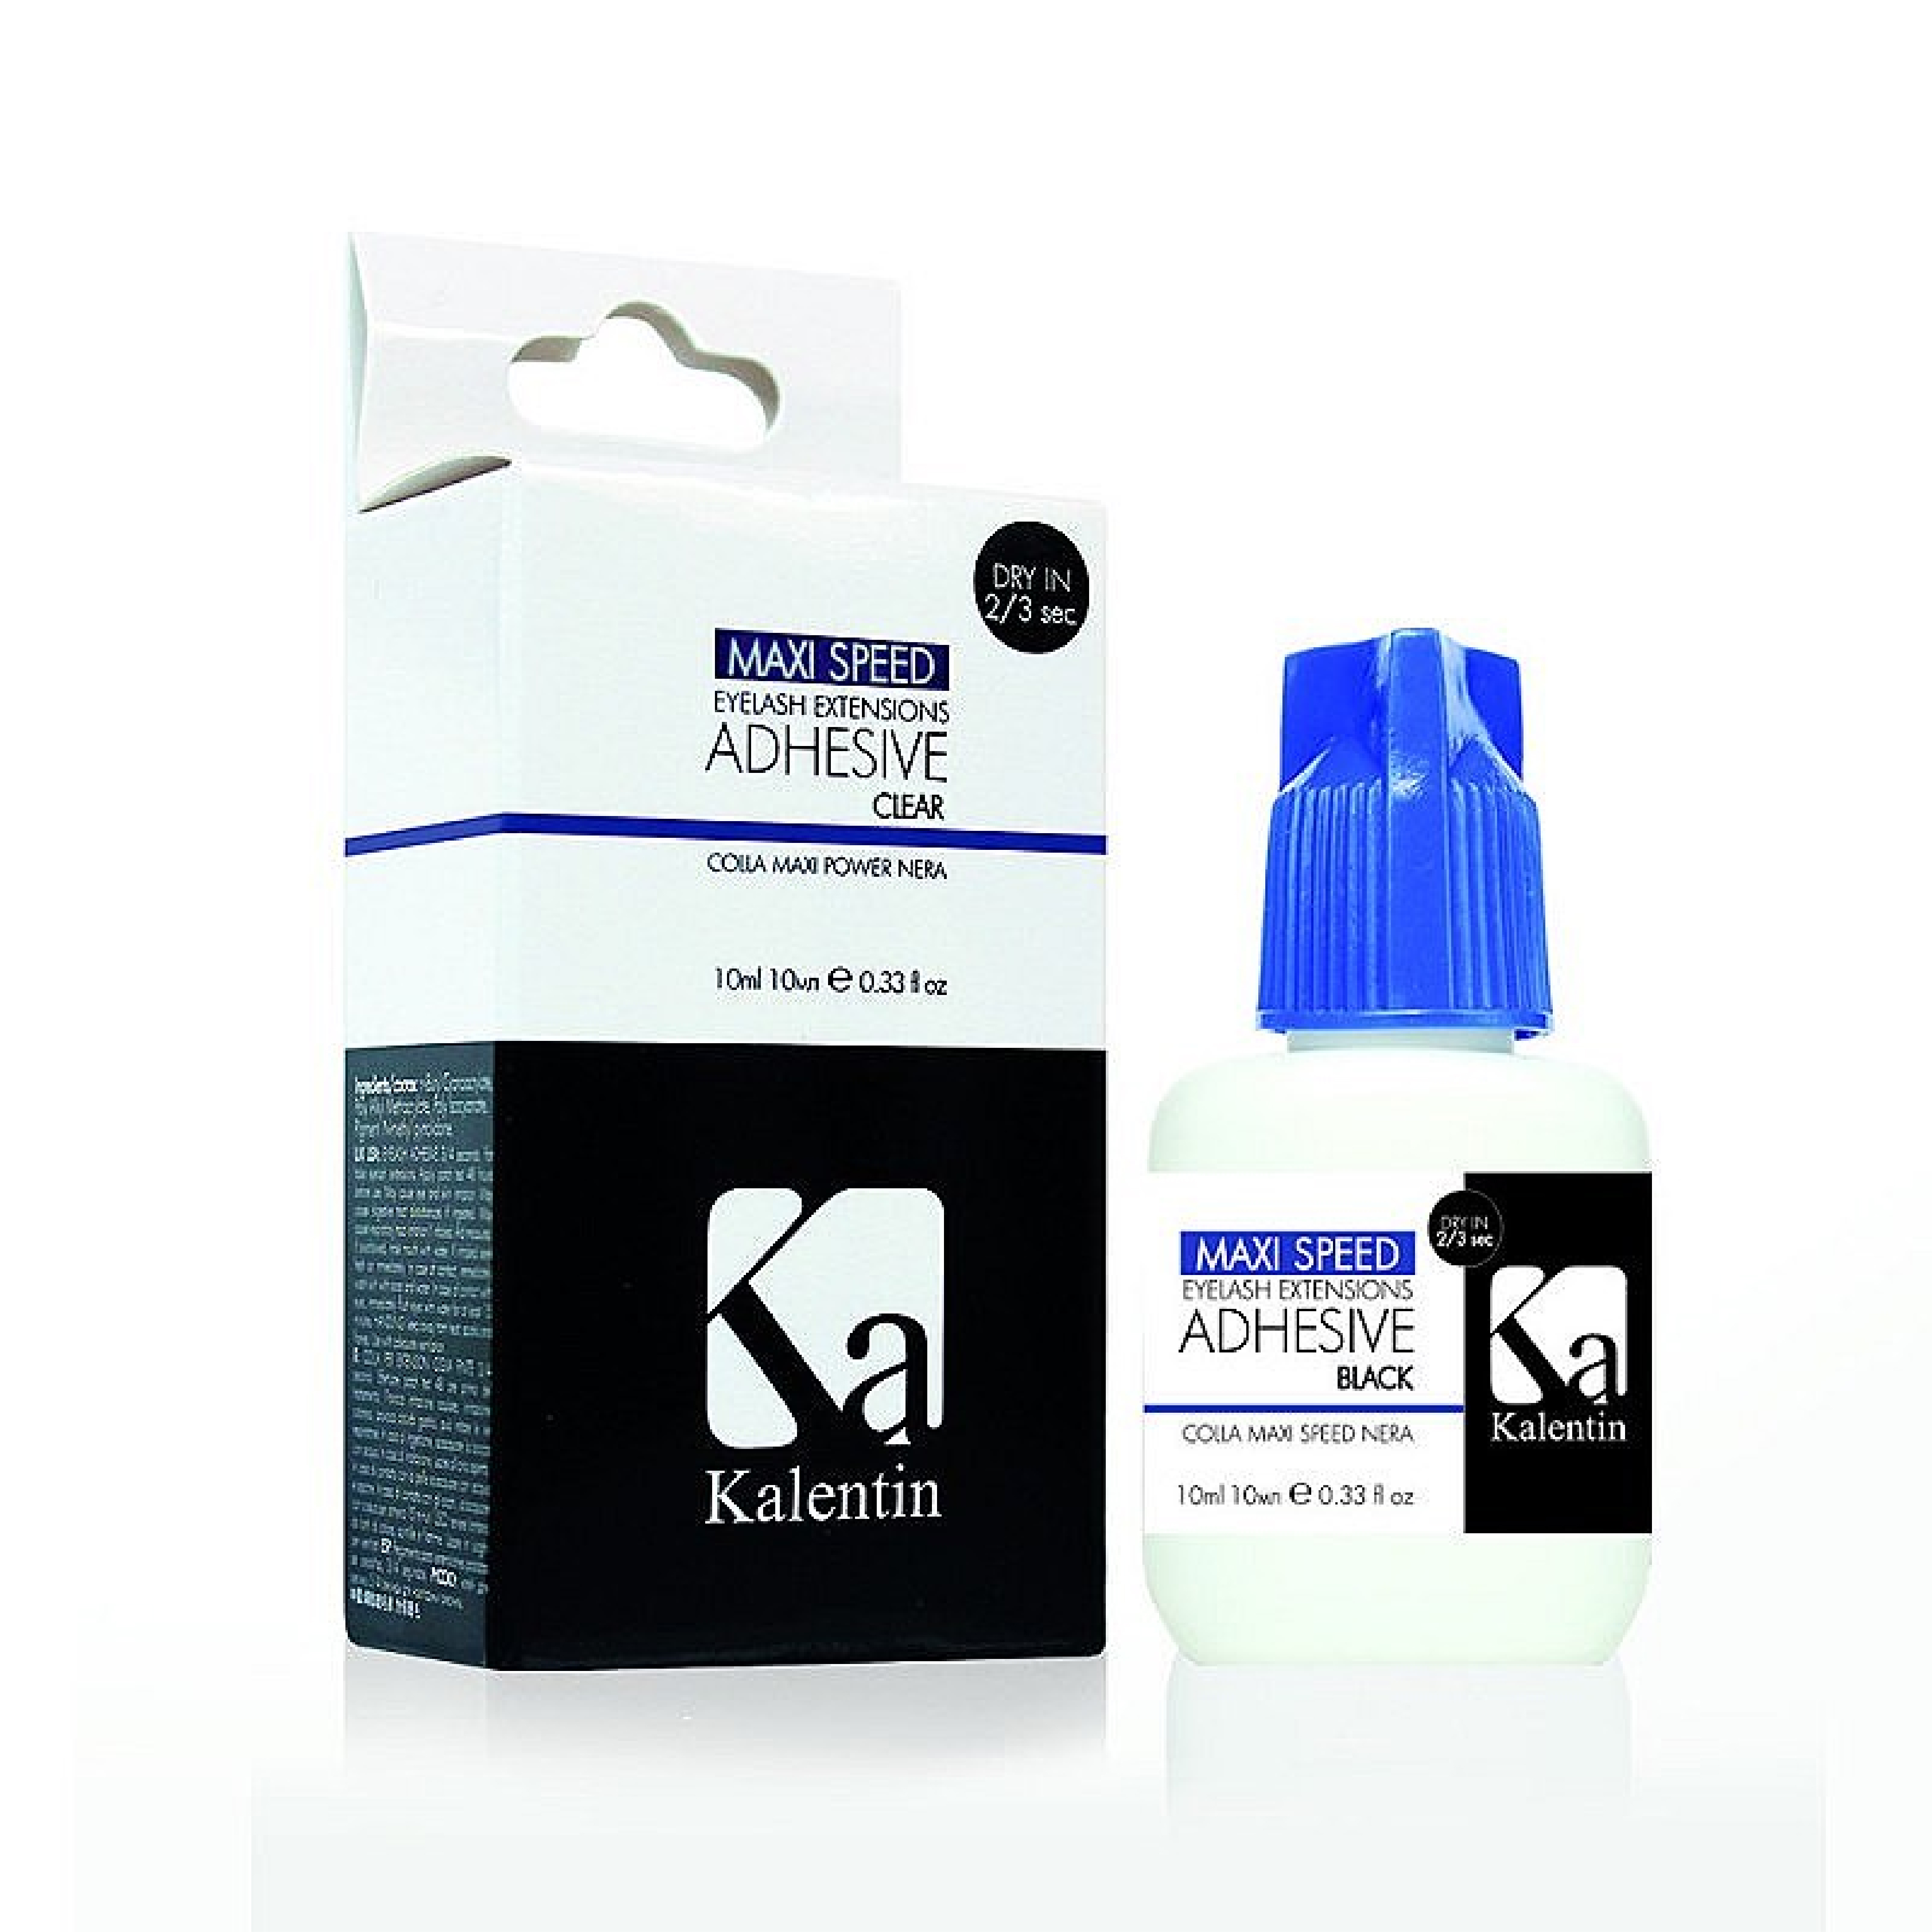 KALENTIN COLLA EXTENSION CIGLIA MAXI SPEED NERA ASCIUGA IN 2/3 SEC 10 ML